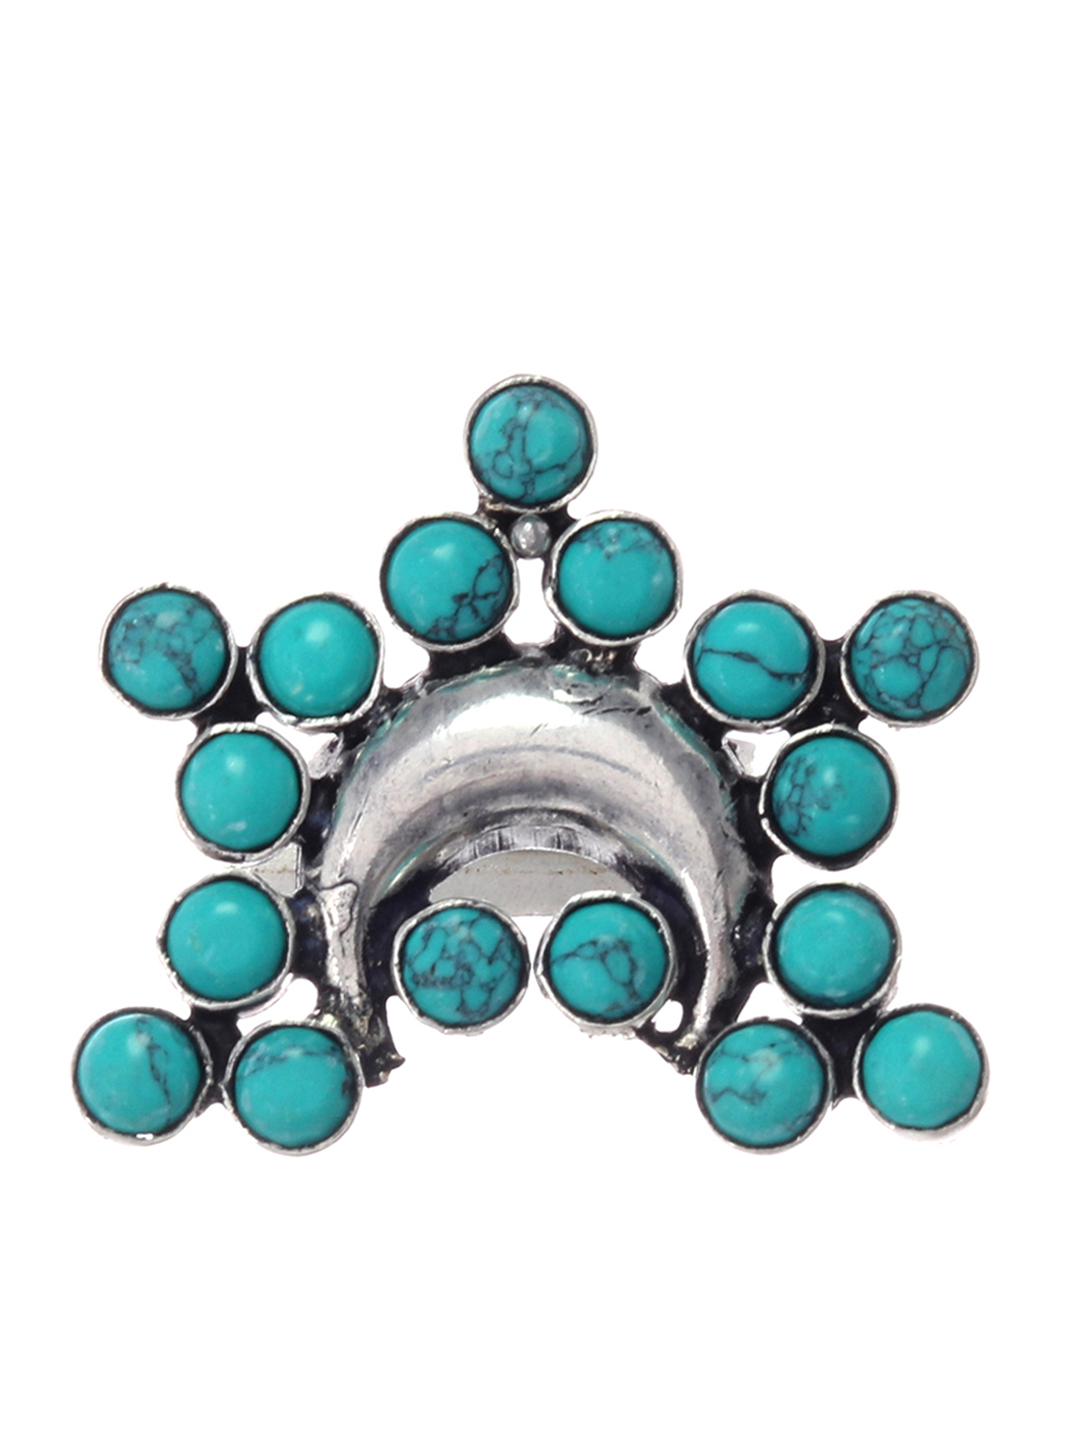 Silvermerc Designs Silver-Plated & Blue Stone-Studded Oxidised Silver Finger Ring Price in India